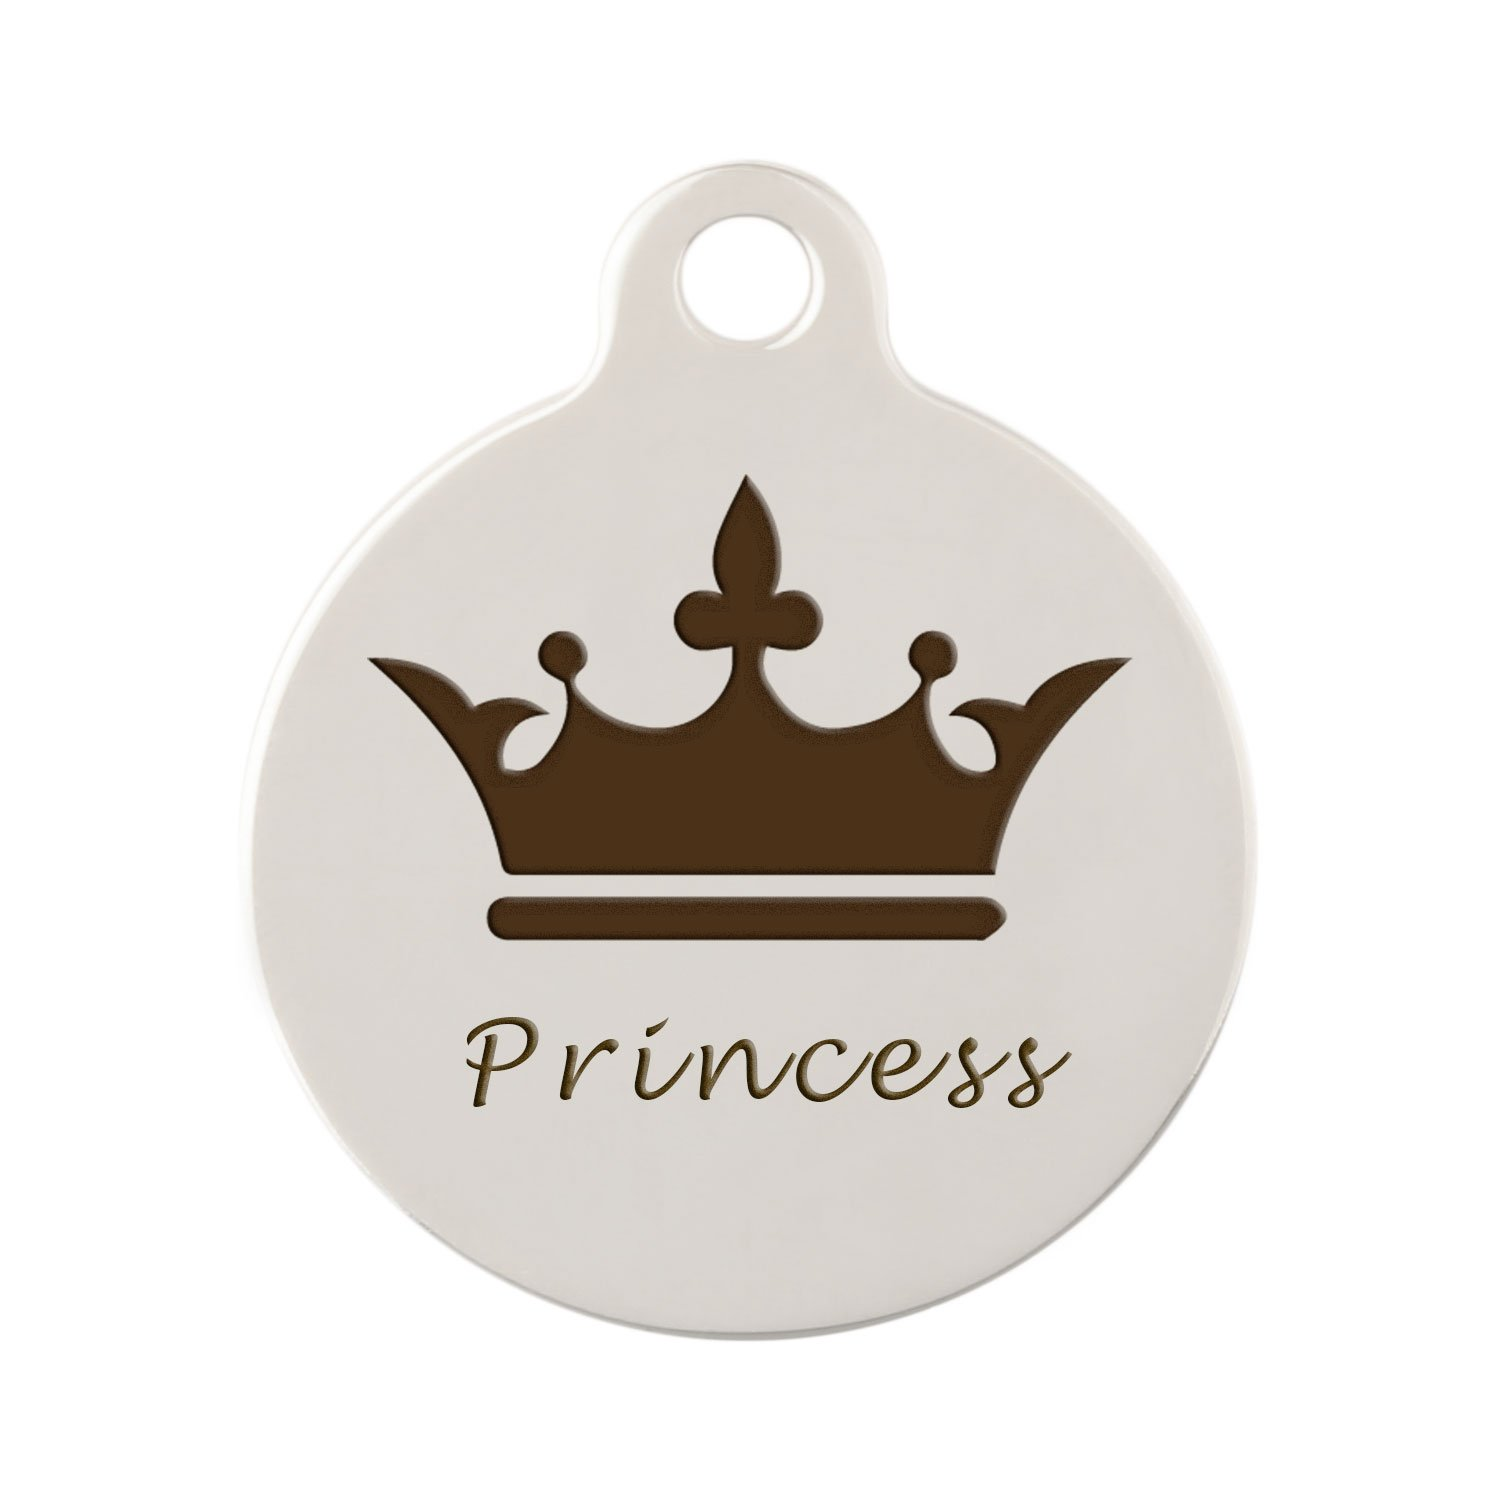 dogIDs Signature Personalized Crown Dog ID Tag - Nickel Plated Brass - 1 Inch Diameter